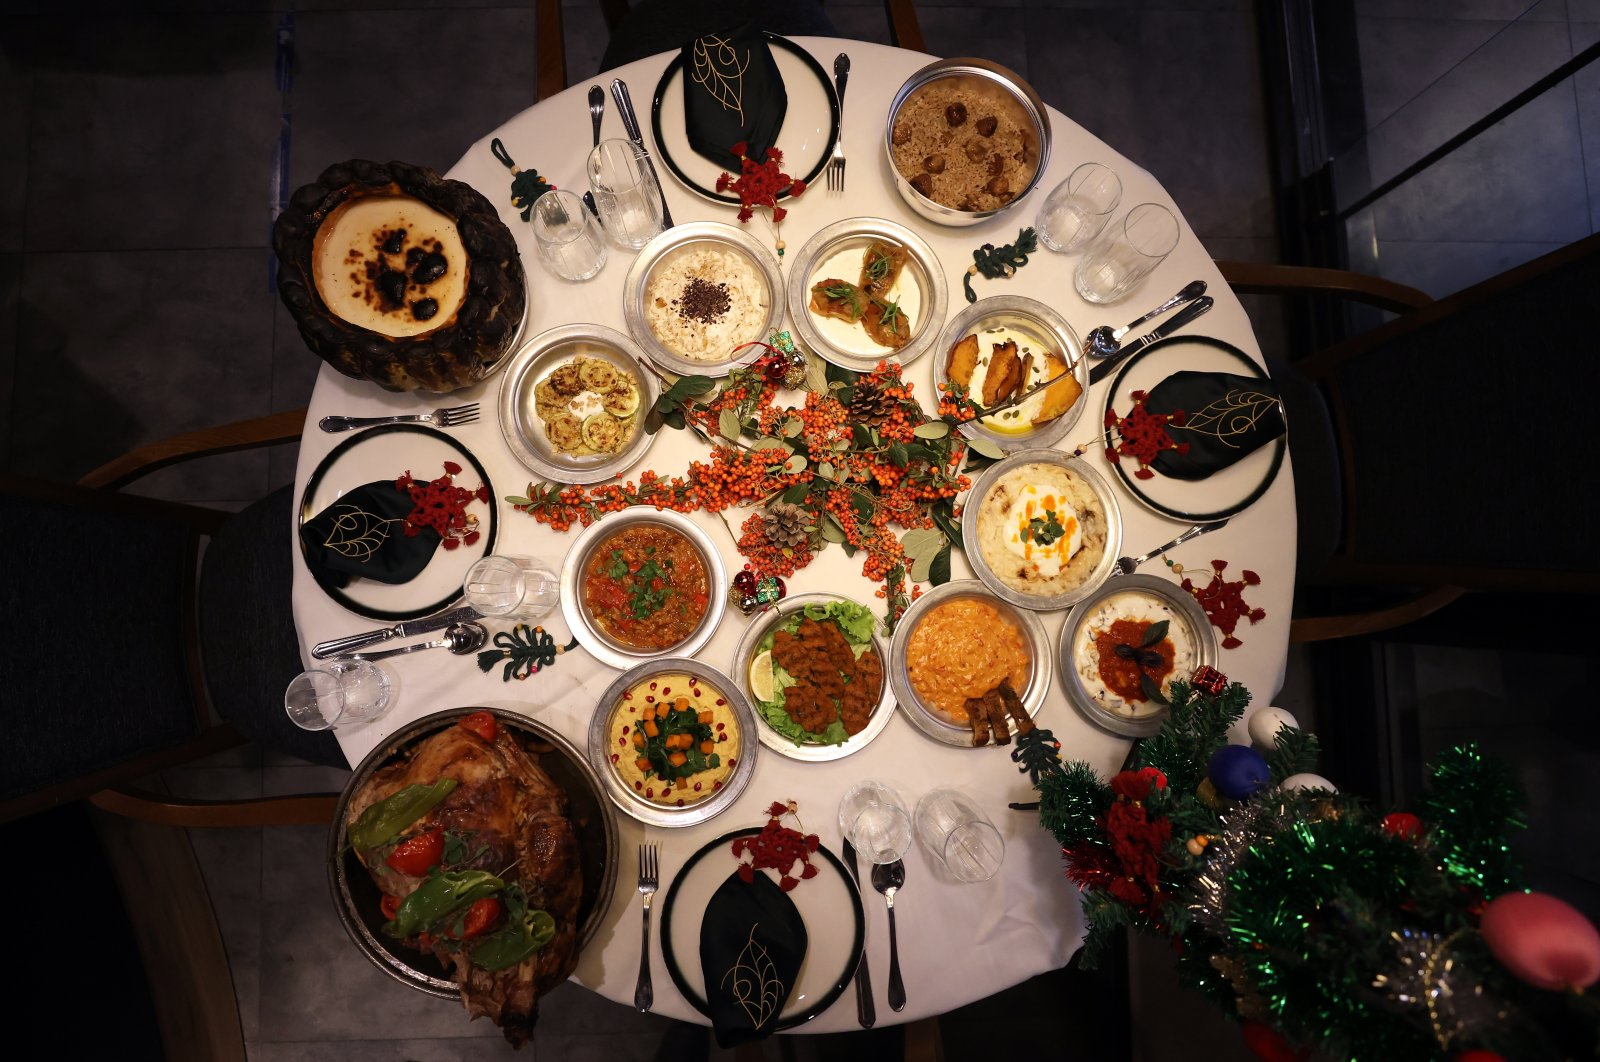 Stuffed and roasted turkey and mezes are the indispensables of a Turkish New Year's table. (AA Photo)